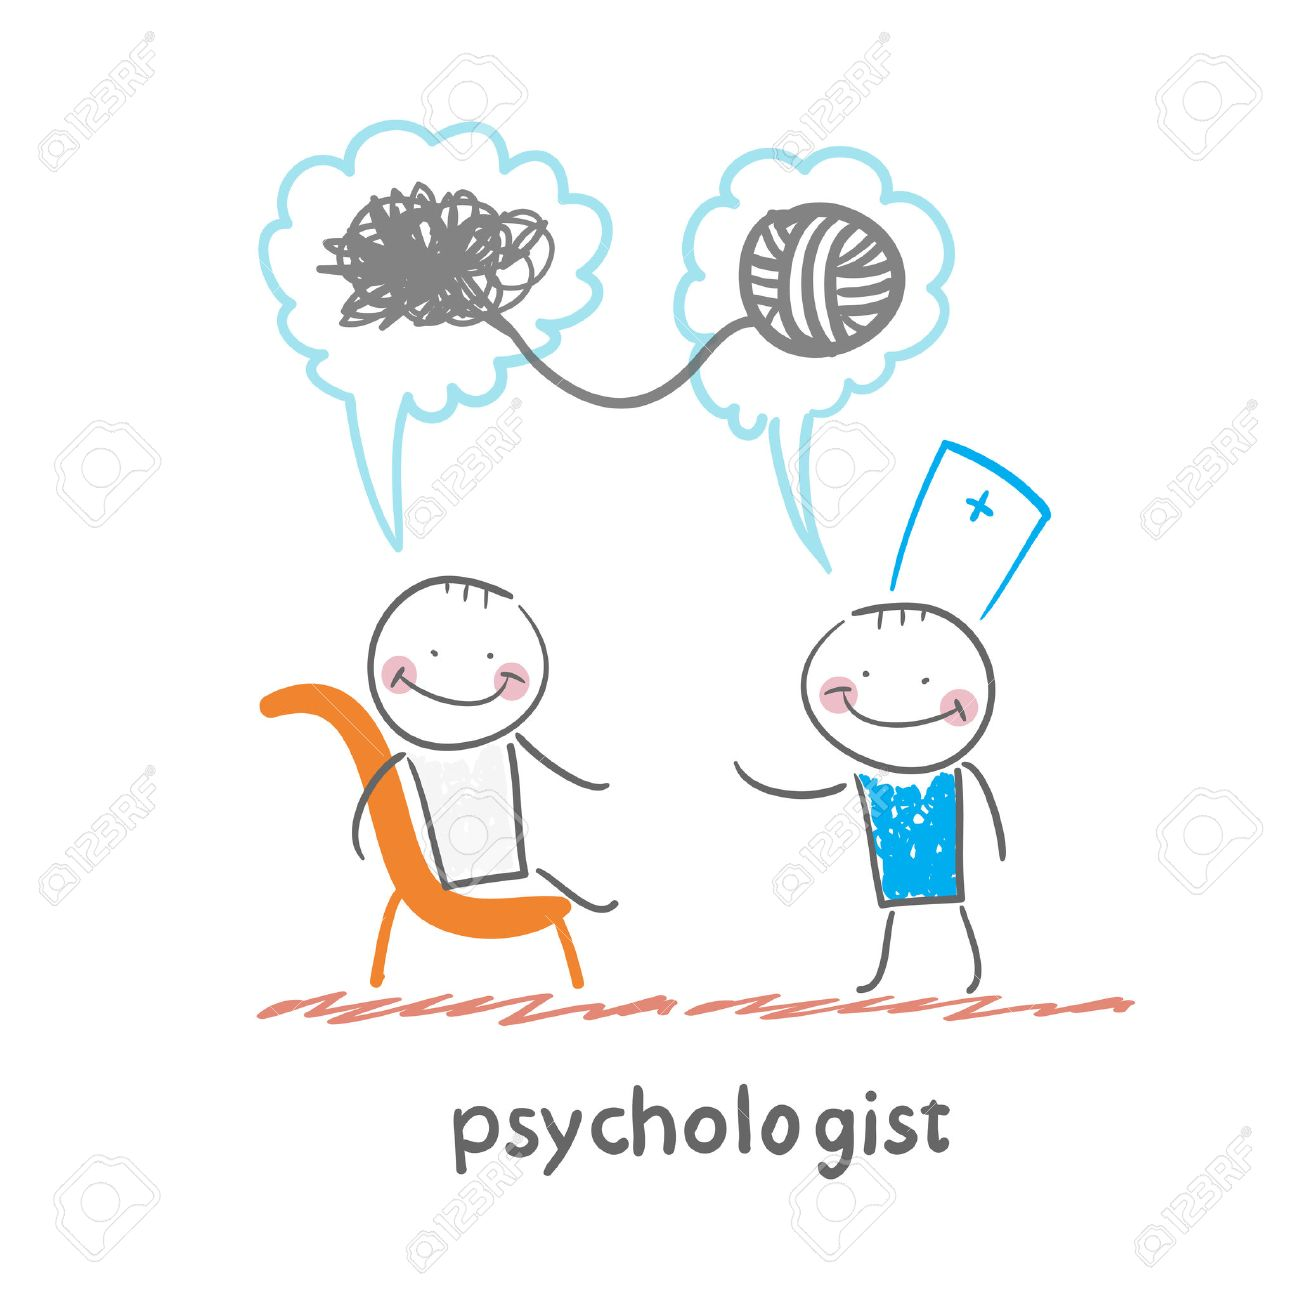 psychologist says to the patient, and solves problems - 32482140